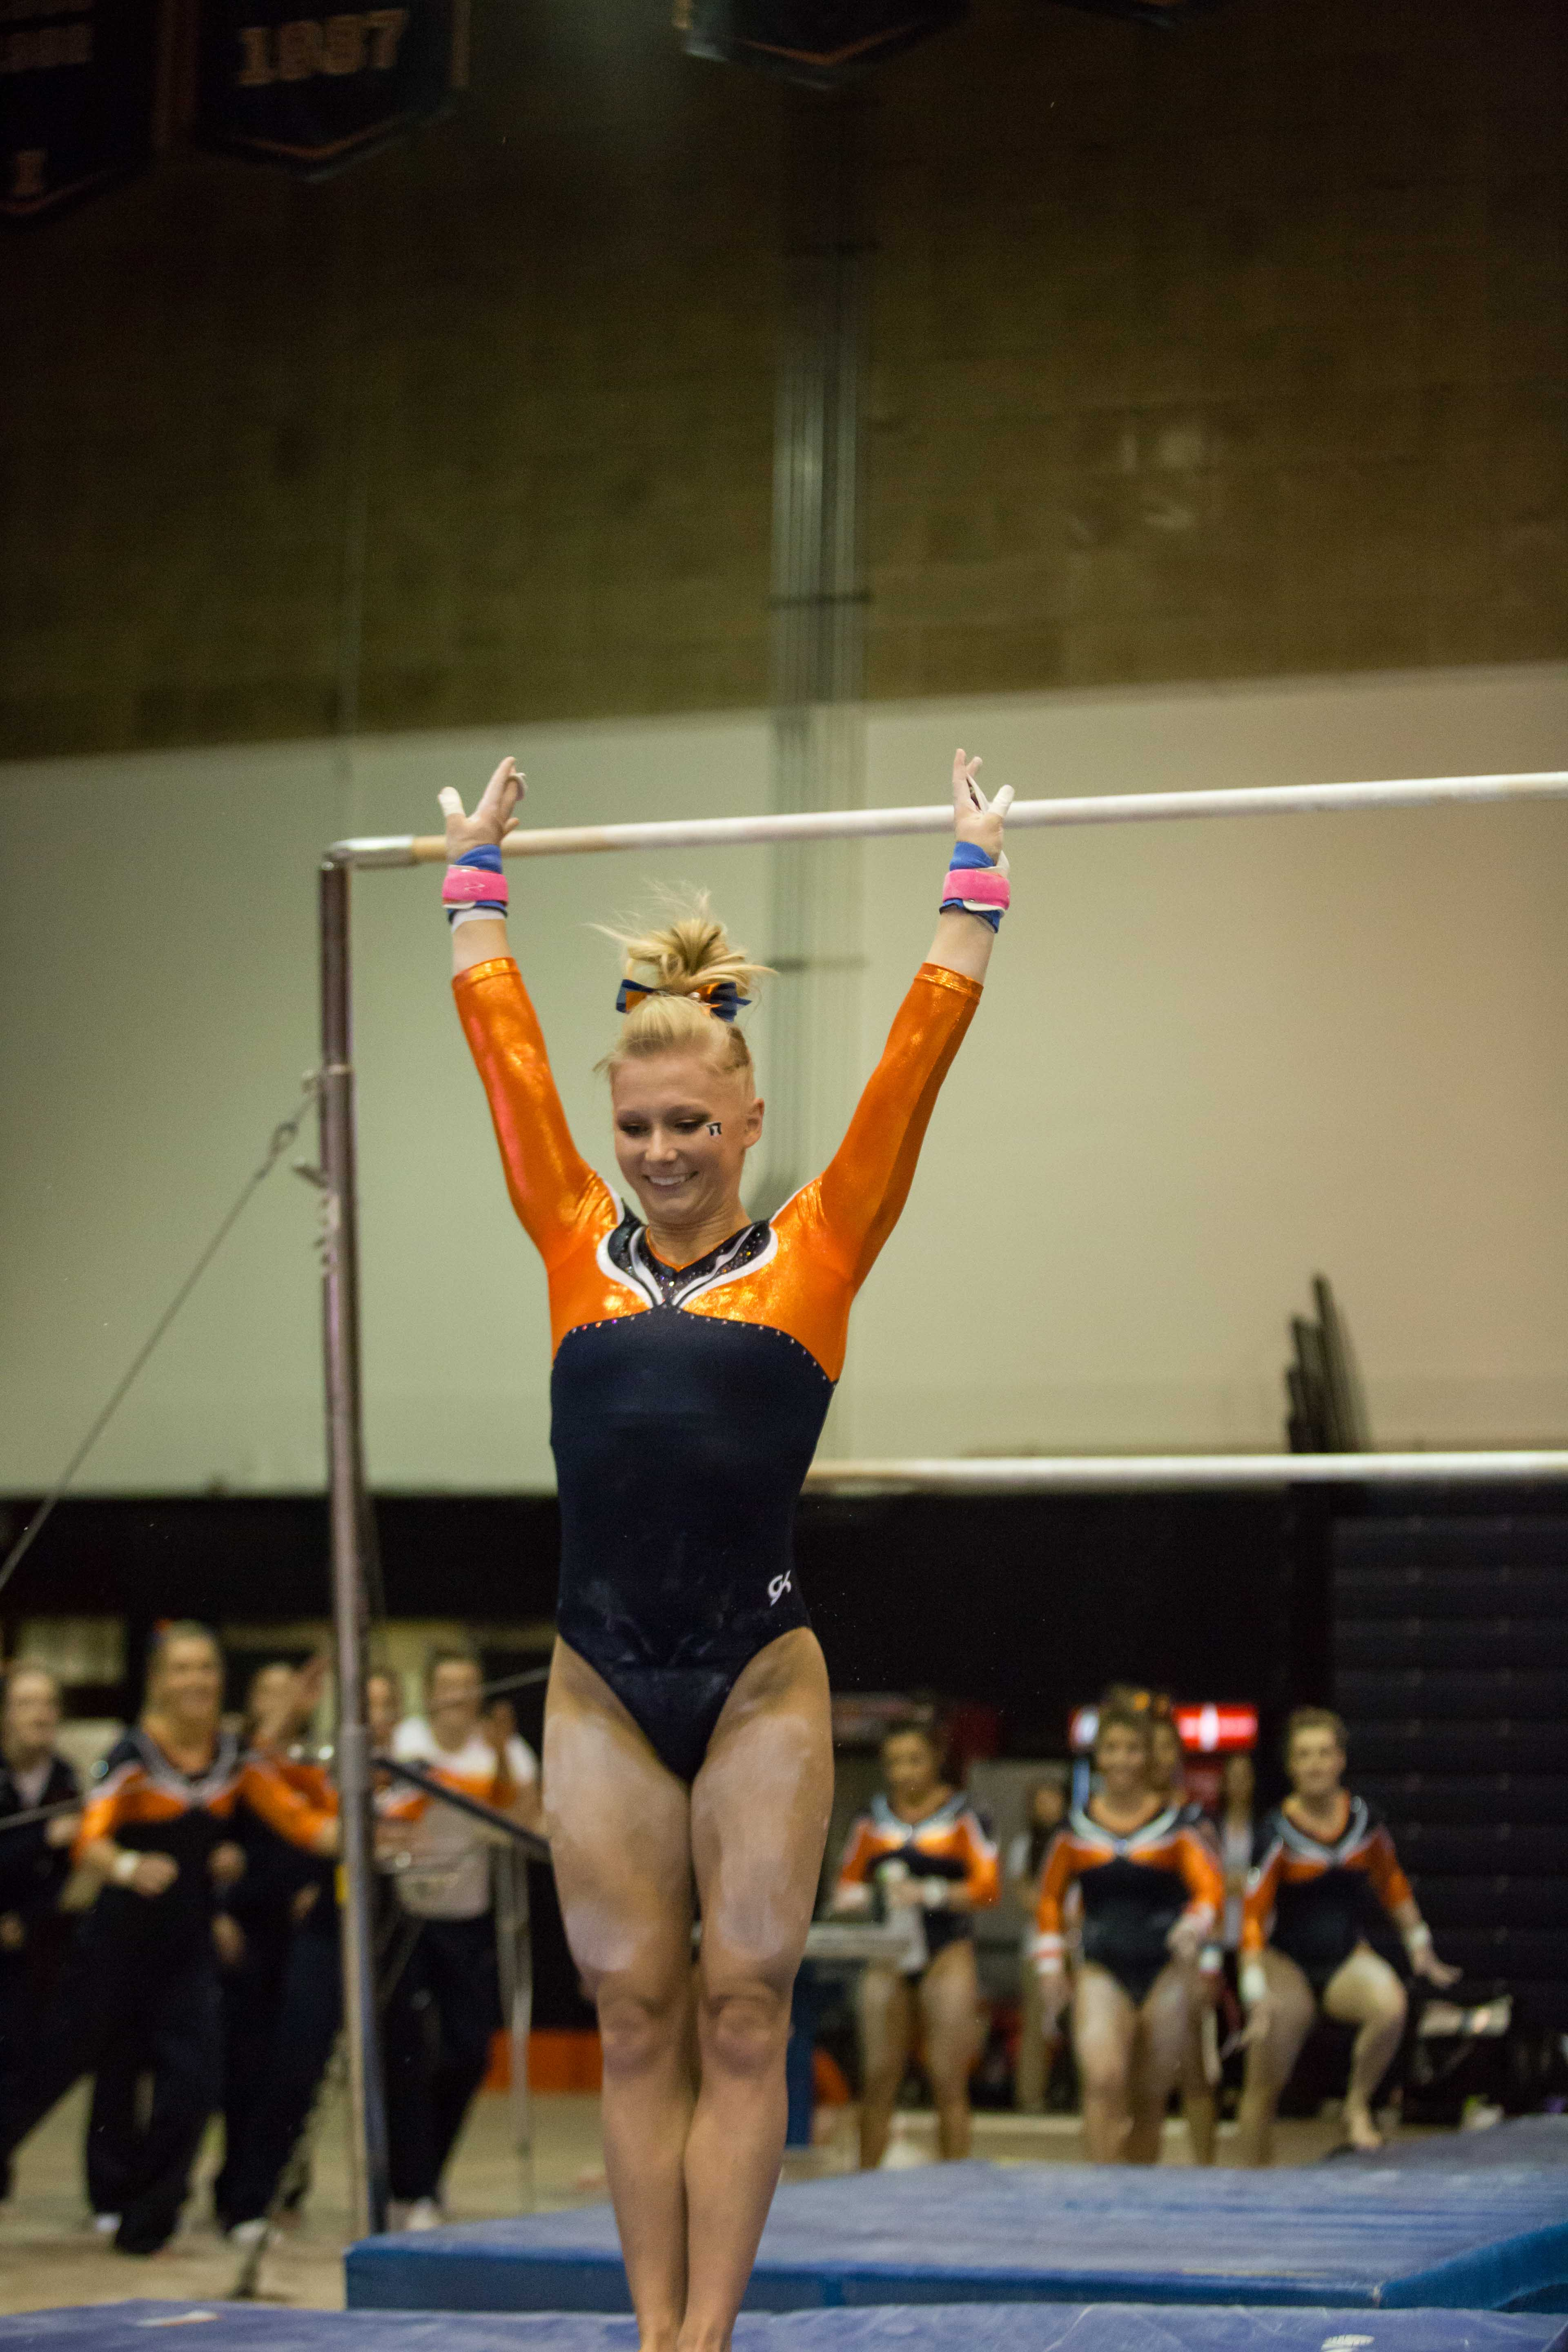 Illinois' Erin Buchanan lands successfully after performing a routine on the uneven parallel bars during the State of Illinois Classic at Huff Hall on Saturday, March 5, 2015. The Illini claimed victory for the ninth consecutive year with a total of 195.425 over Northern Illinois (194.225), UIC(192.625) and Illinois State (191.500).